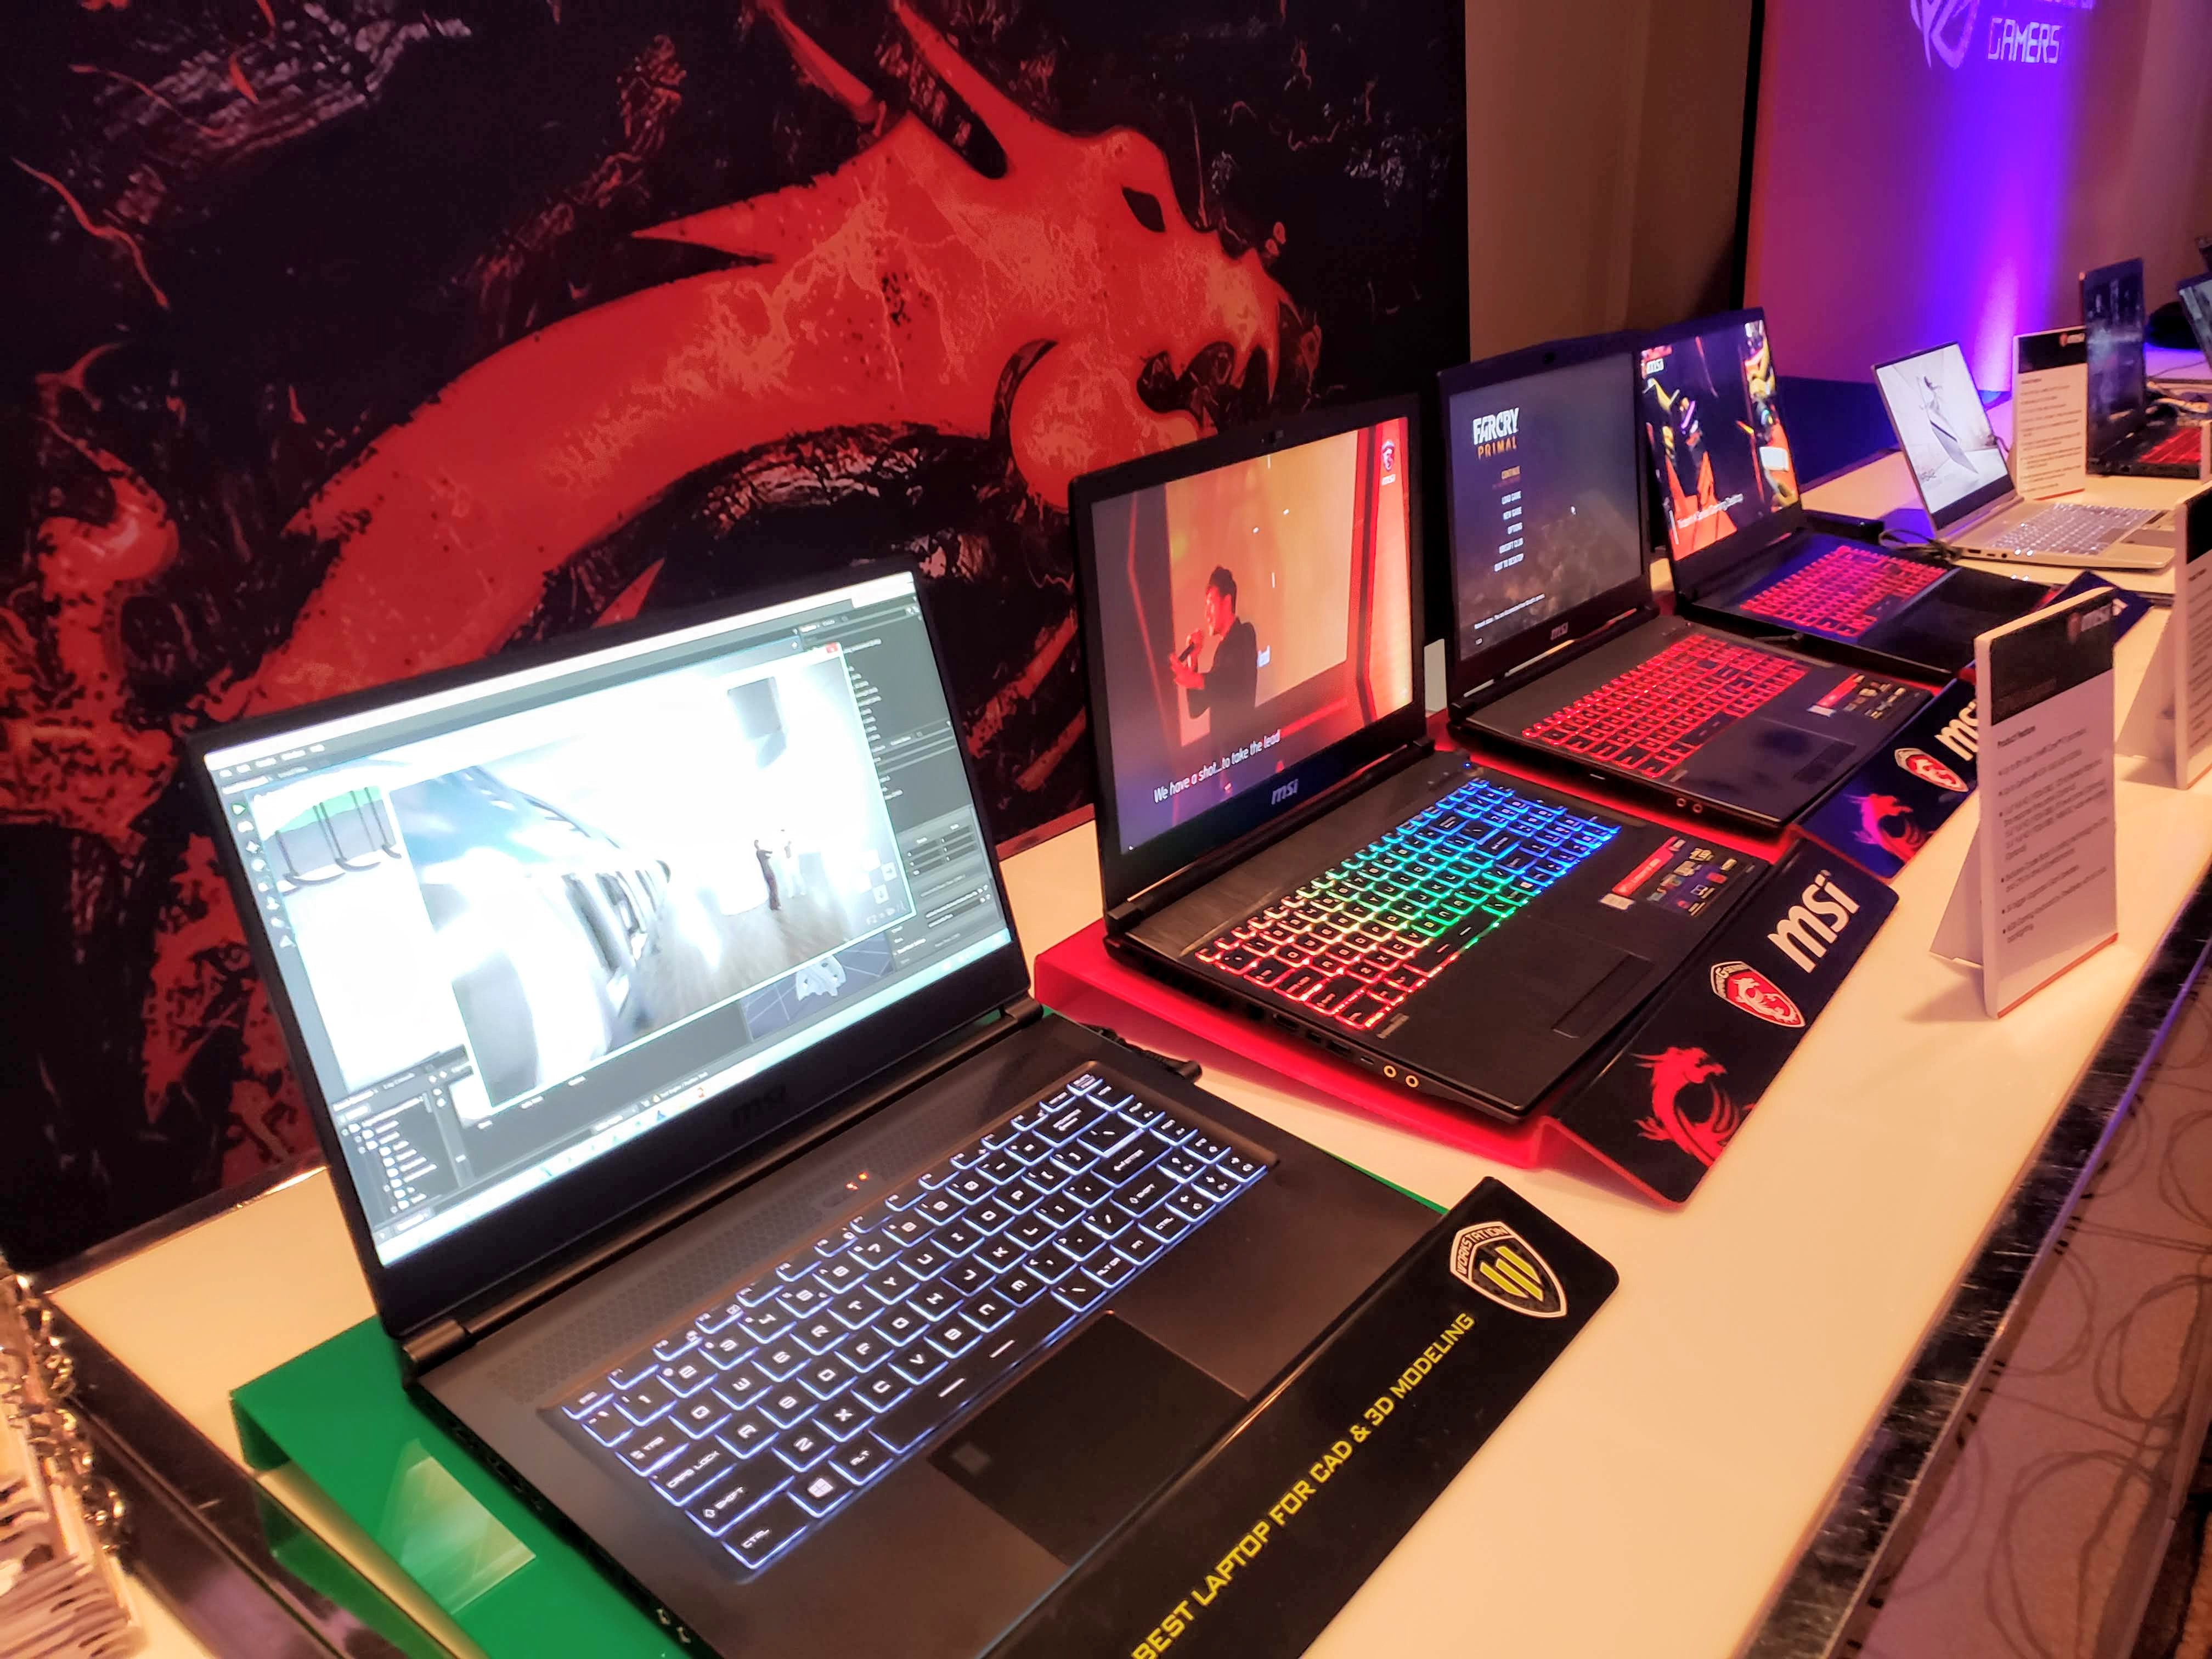 Intel Experience Day - LED colour laptops